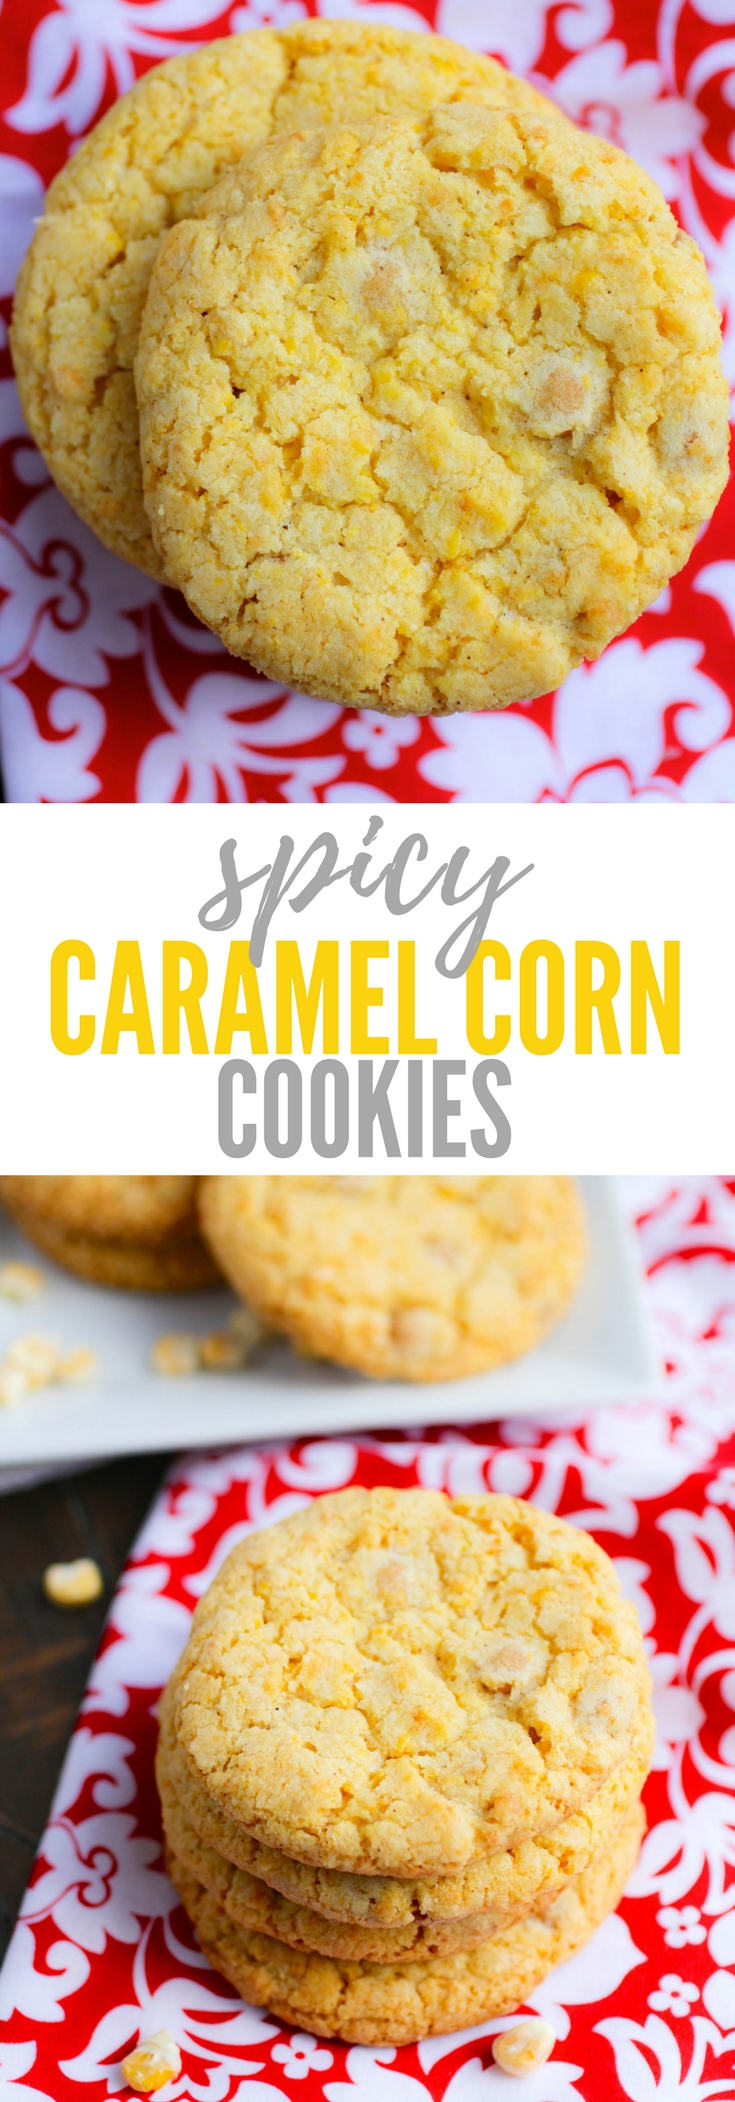 Spicy Caramel Corn Cookies are a fun treat as dessert. You'll love these unusually delicious Spicy Caramel Corn Cookies.